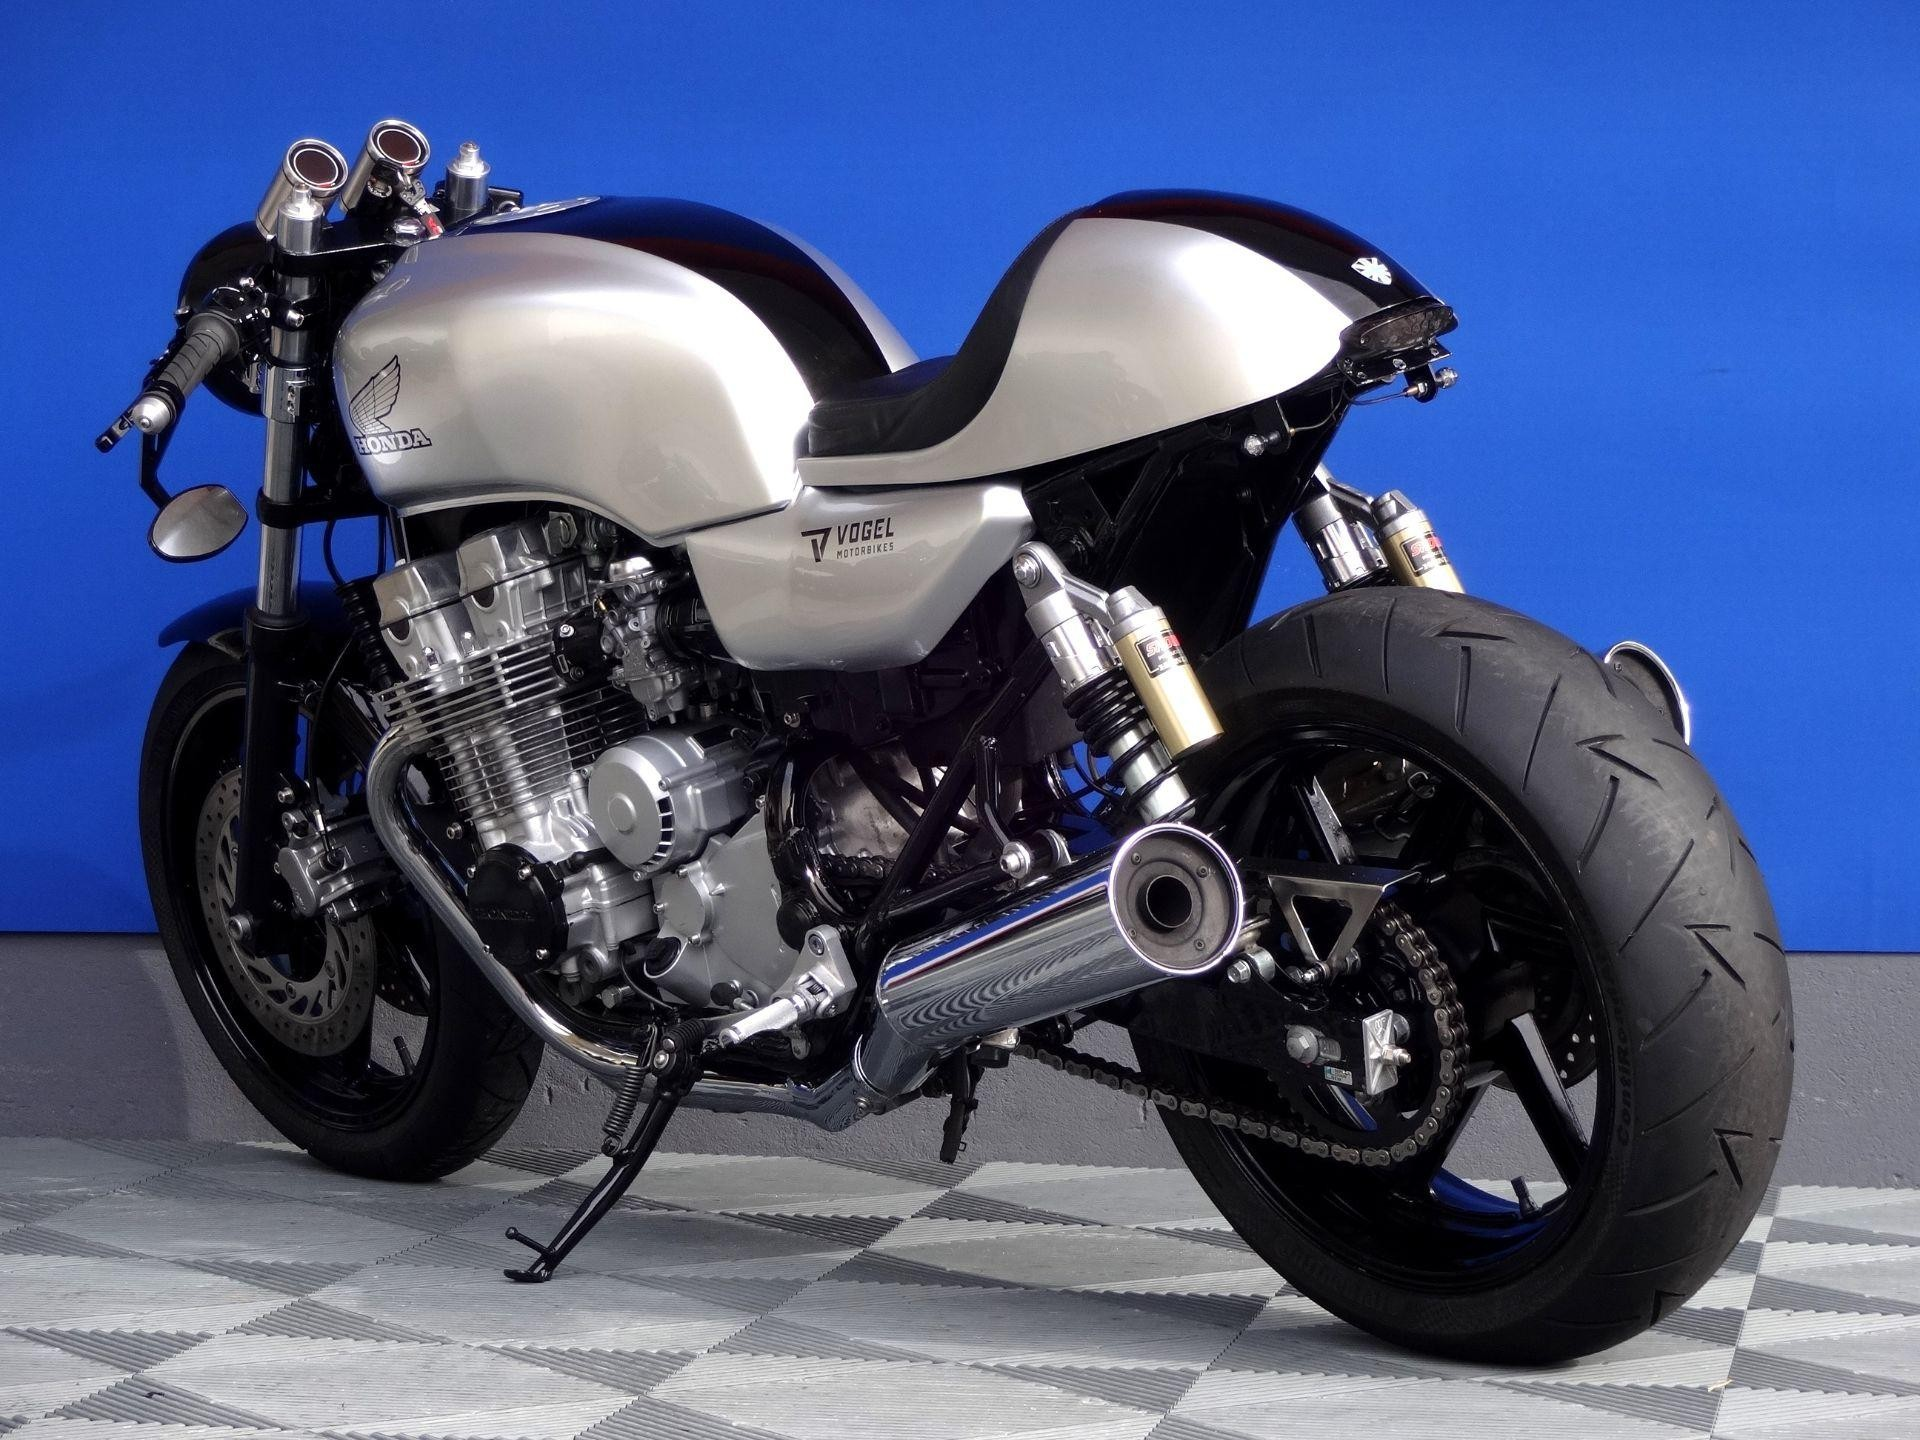 Pieces Occasion Moto Cafe Racer